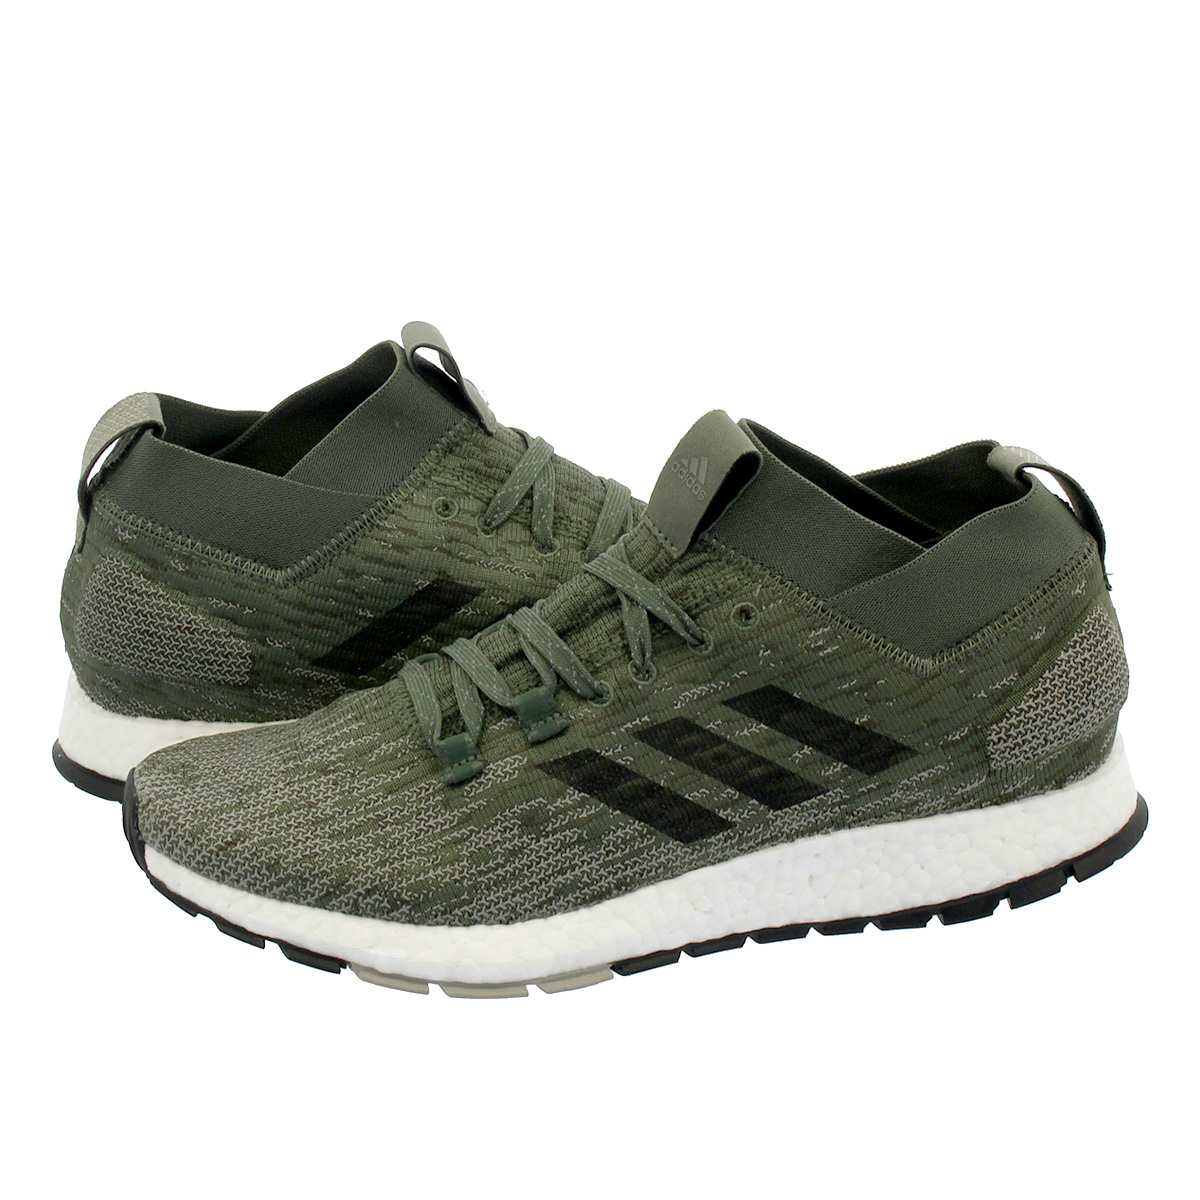 3583df8071971 ... get select shop lowtex adidas pureboost rbl adidas pure boost rbl base  green core black cesame